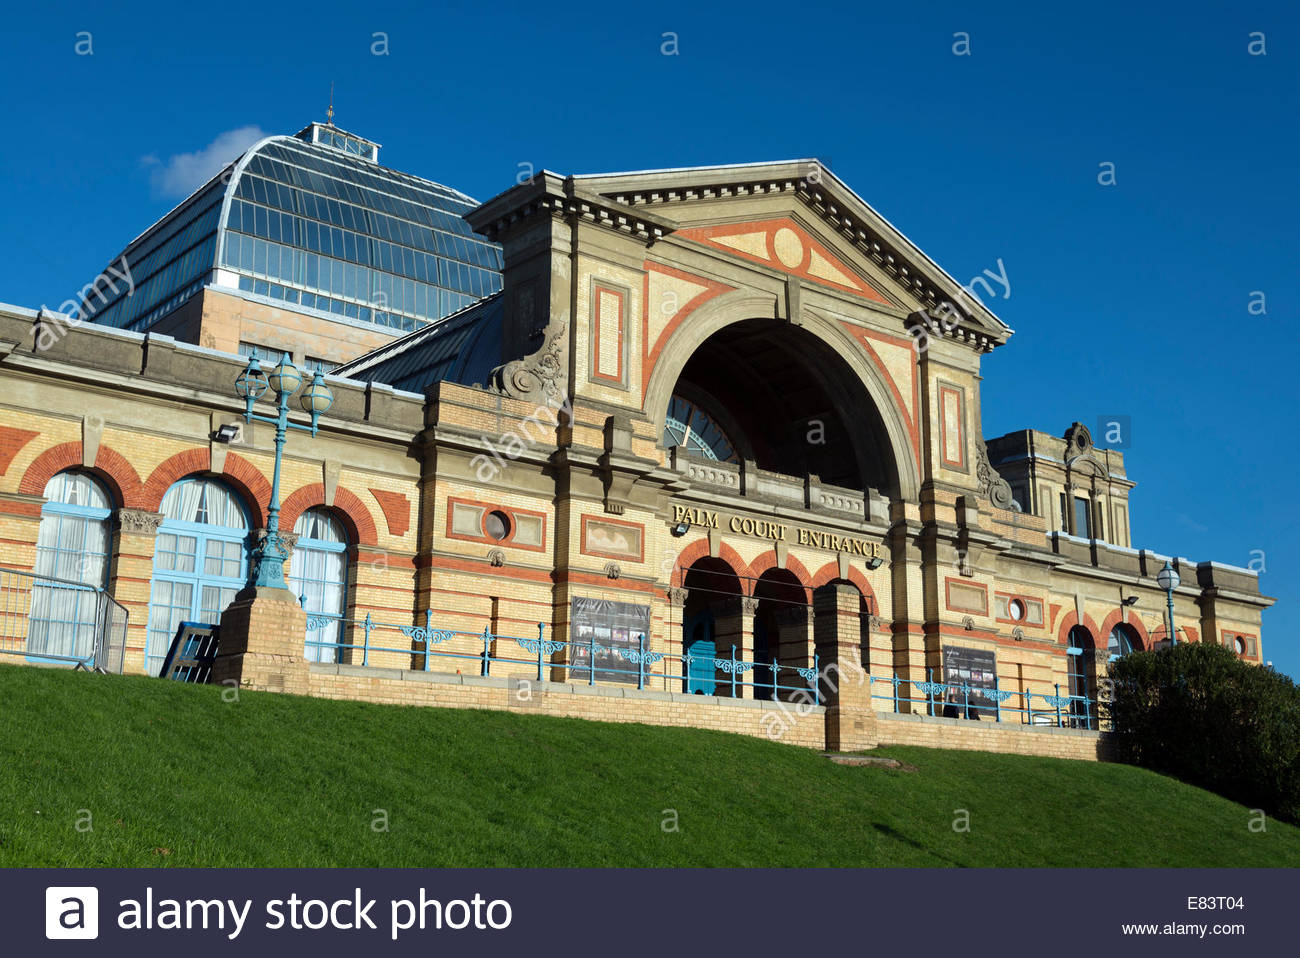 Entrance to Alexandra Palace, London, England, UK - Stock Image